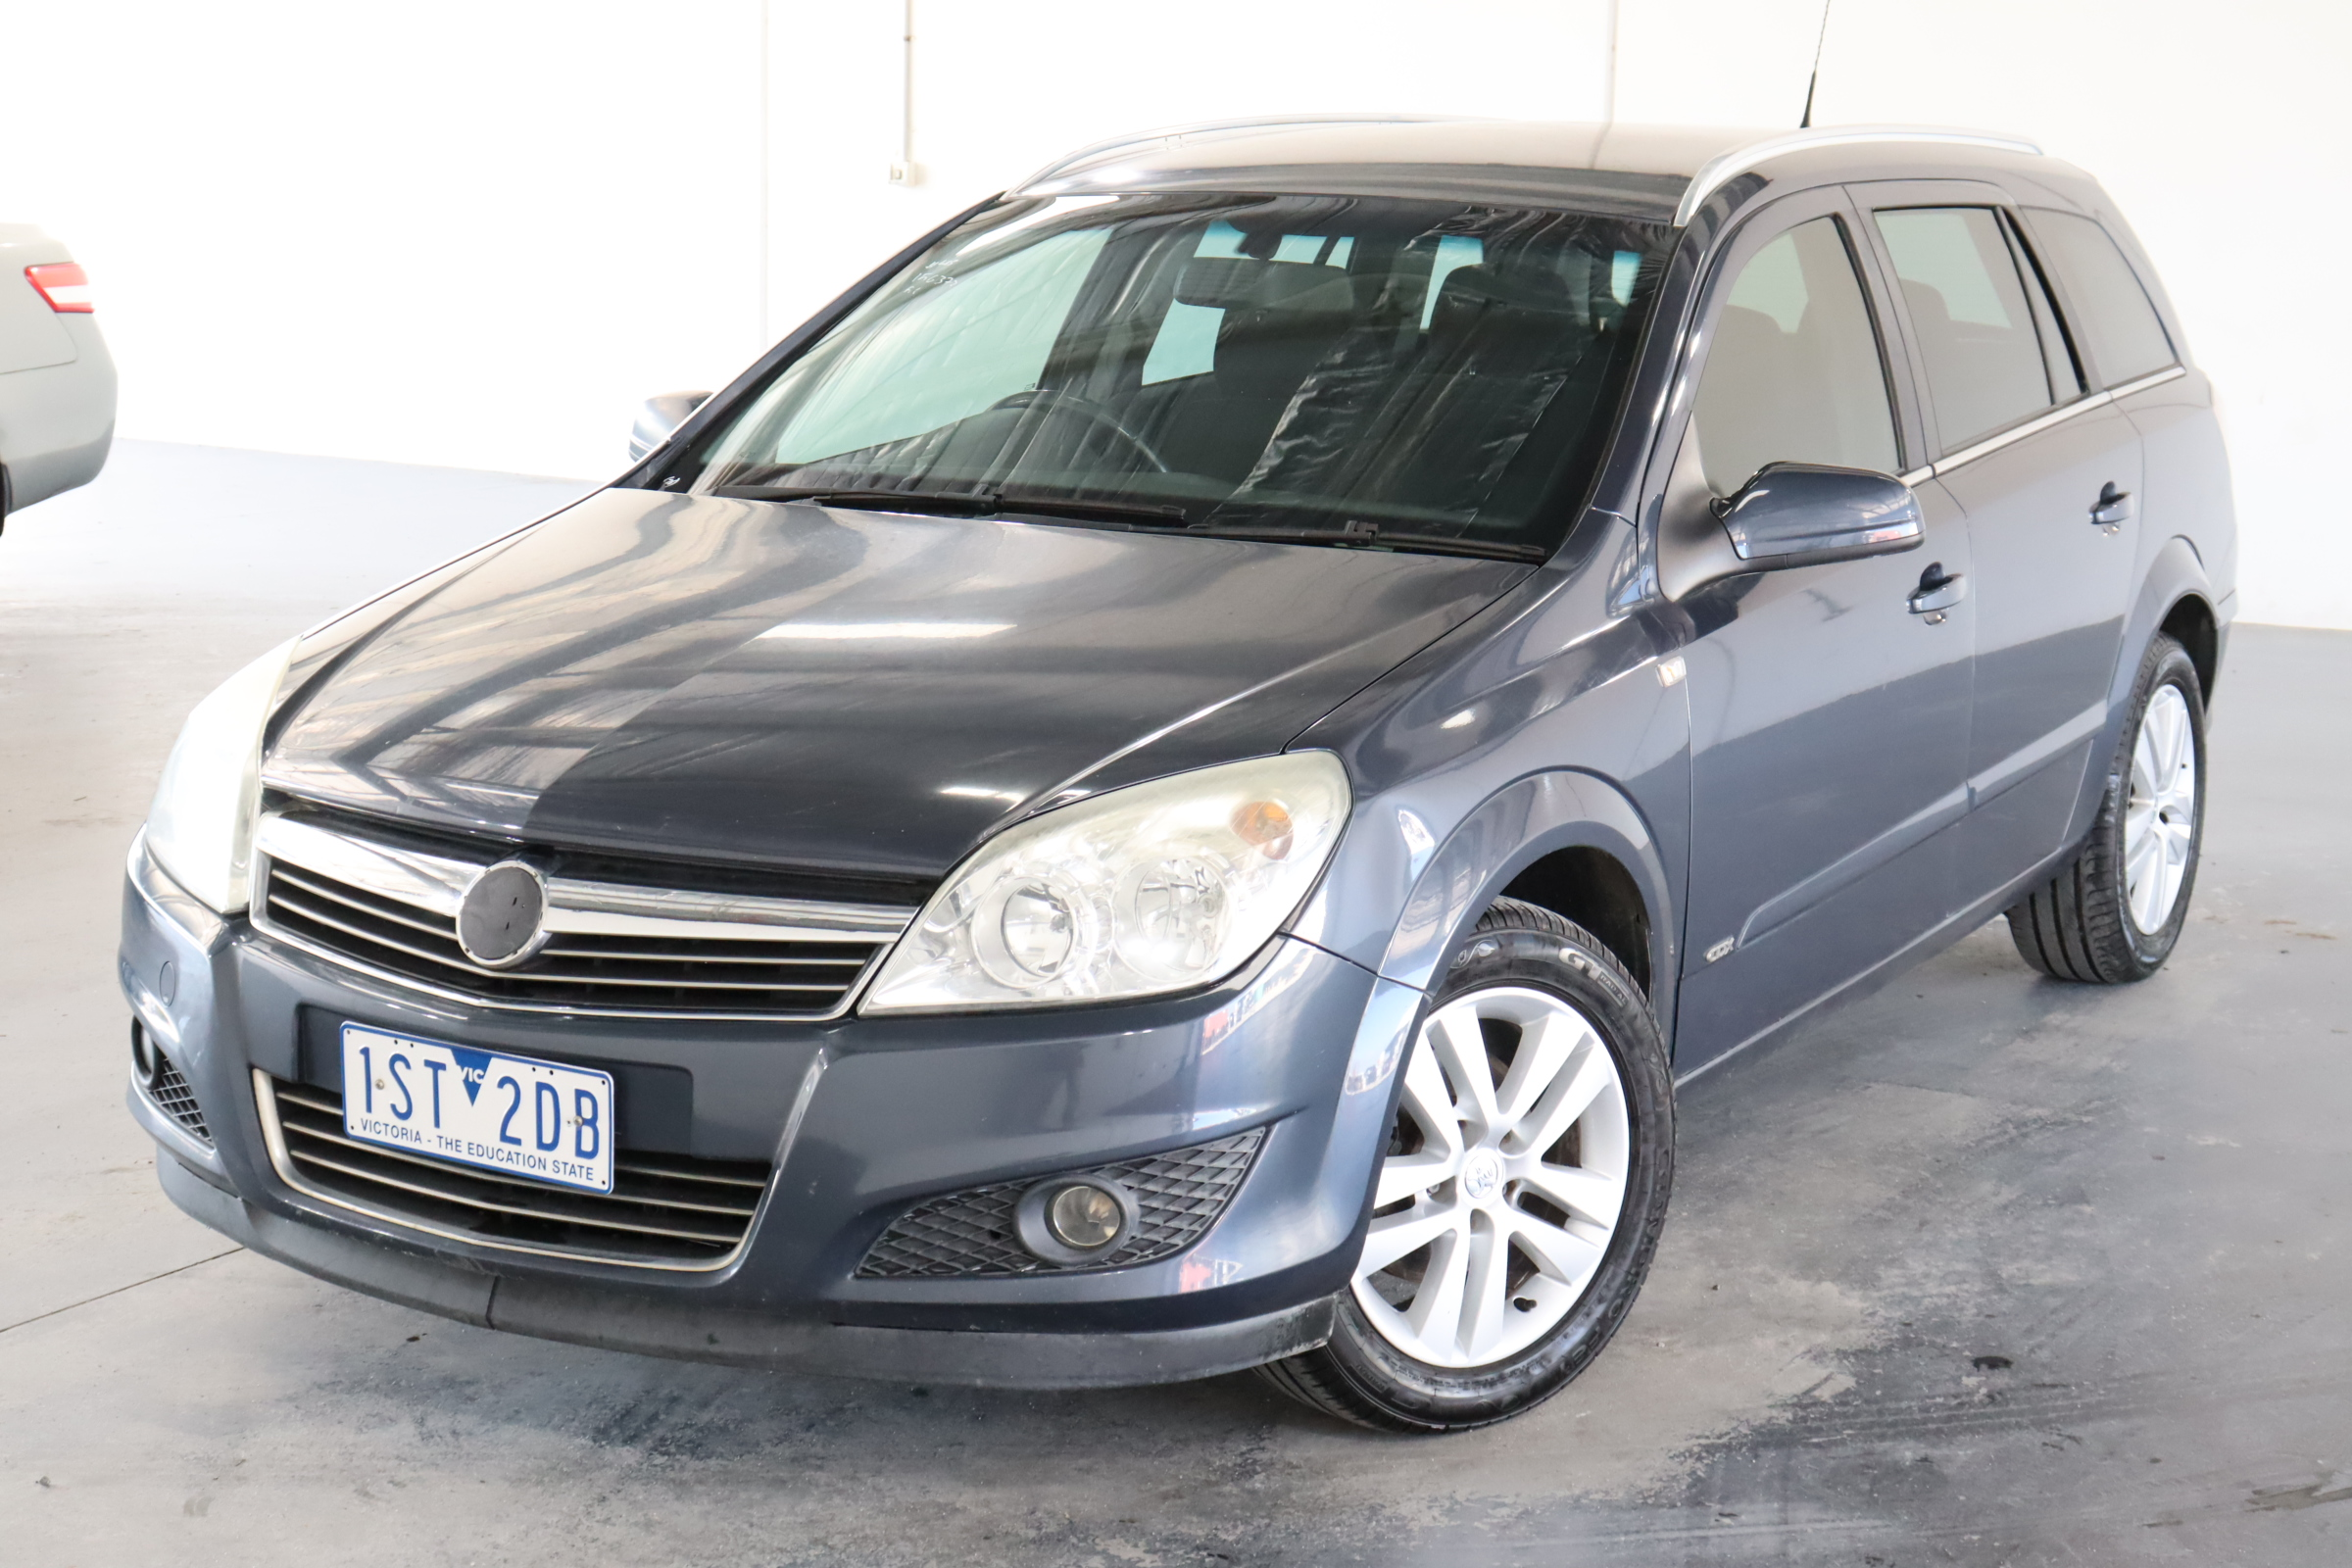 2008 Holden Astra CDX AH Automatic Wagon